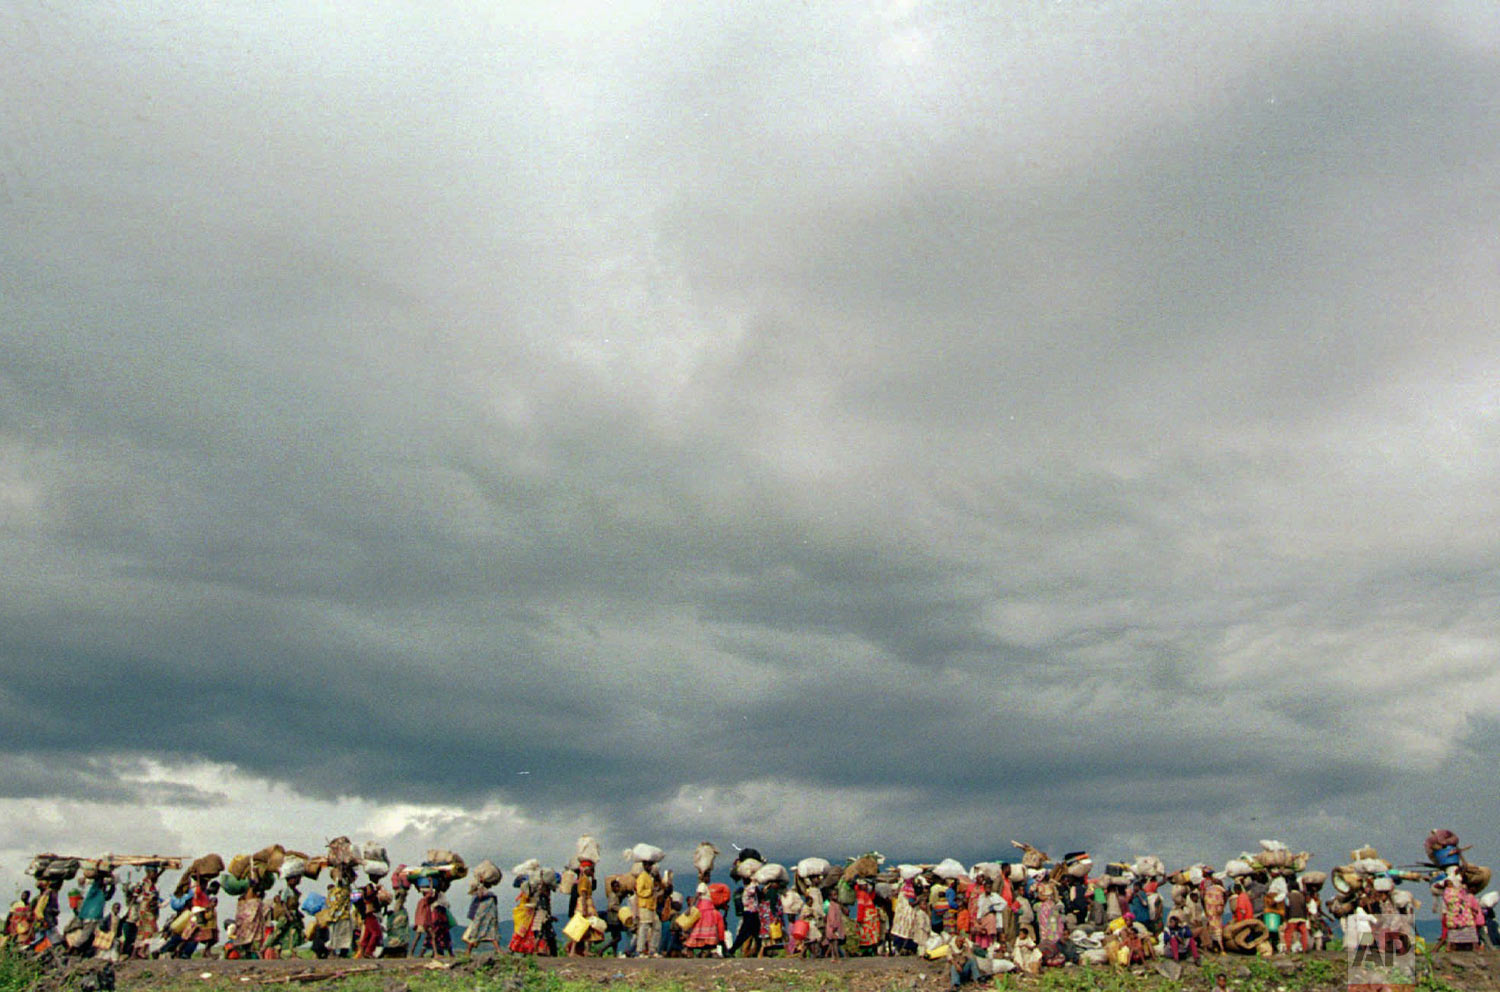 Refugees stream out of the Mugunga refugee camp in eastern Zaire, Nov. 15, 1996, towards the Rwandan border. (AP Photo/Enric Marti)